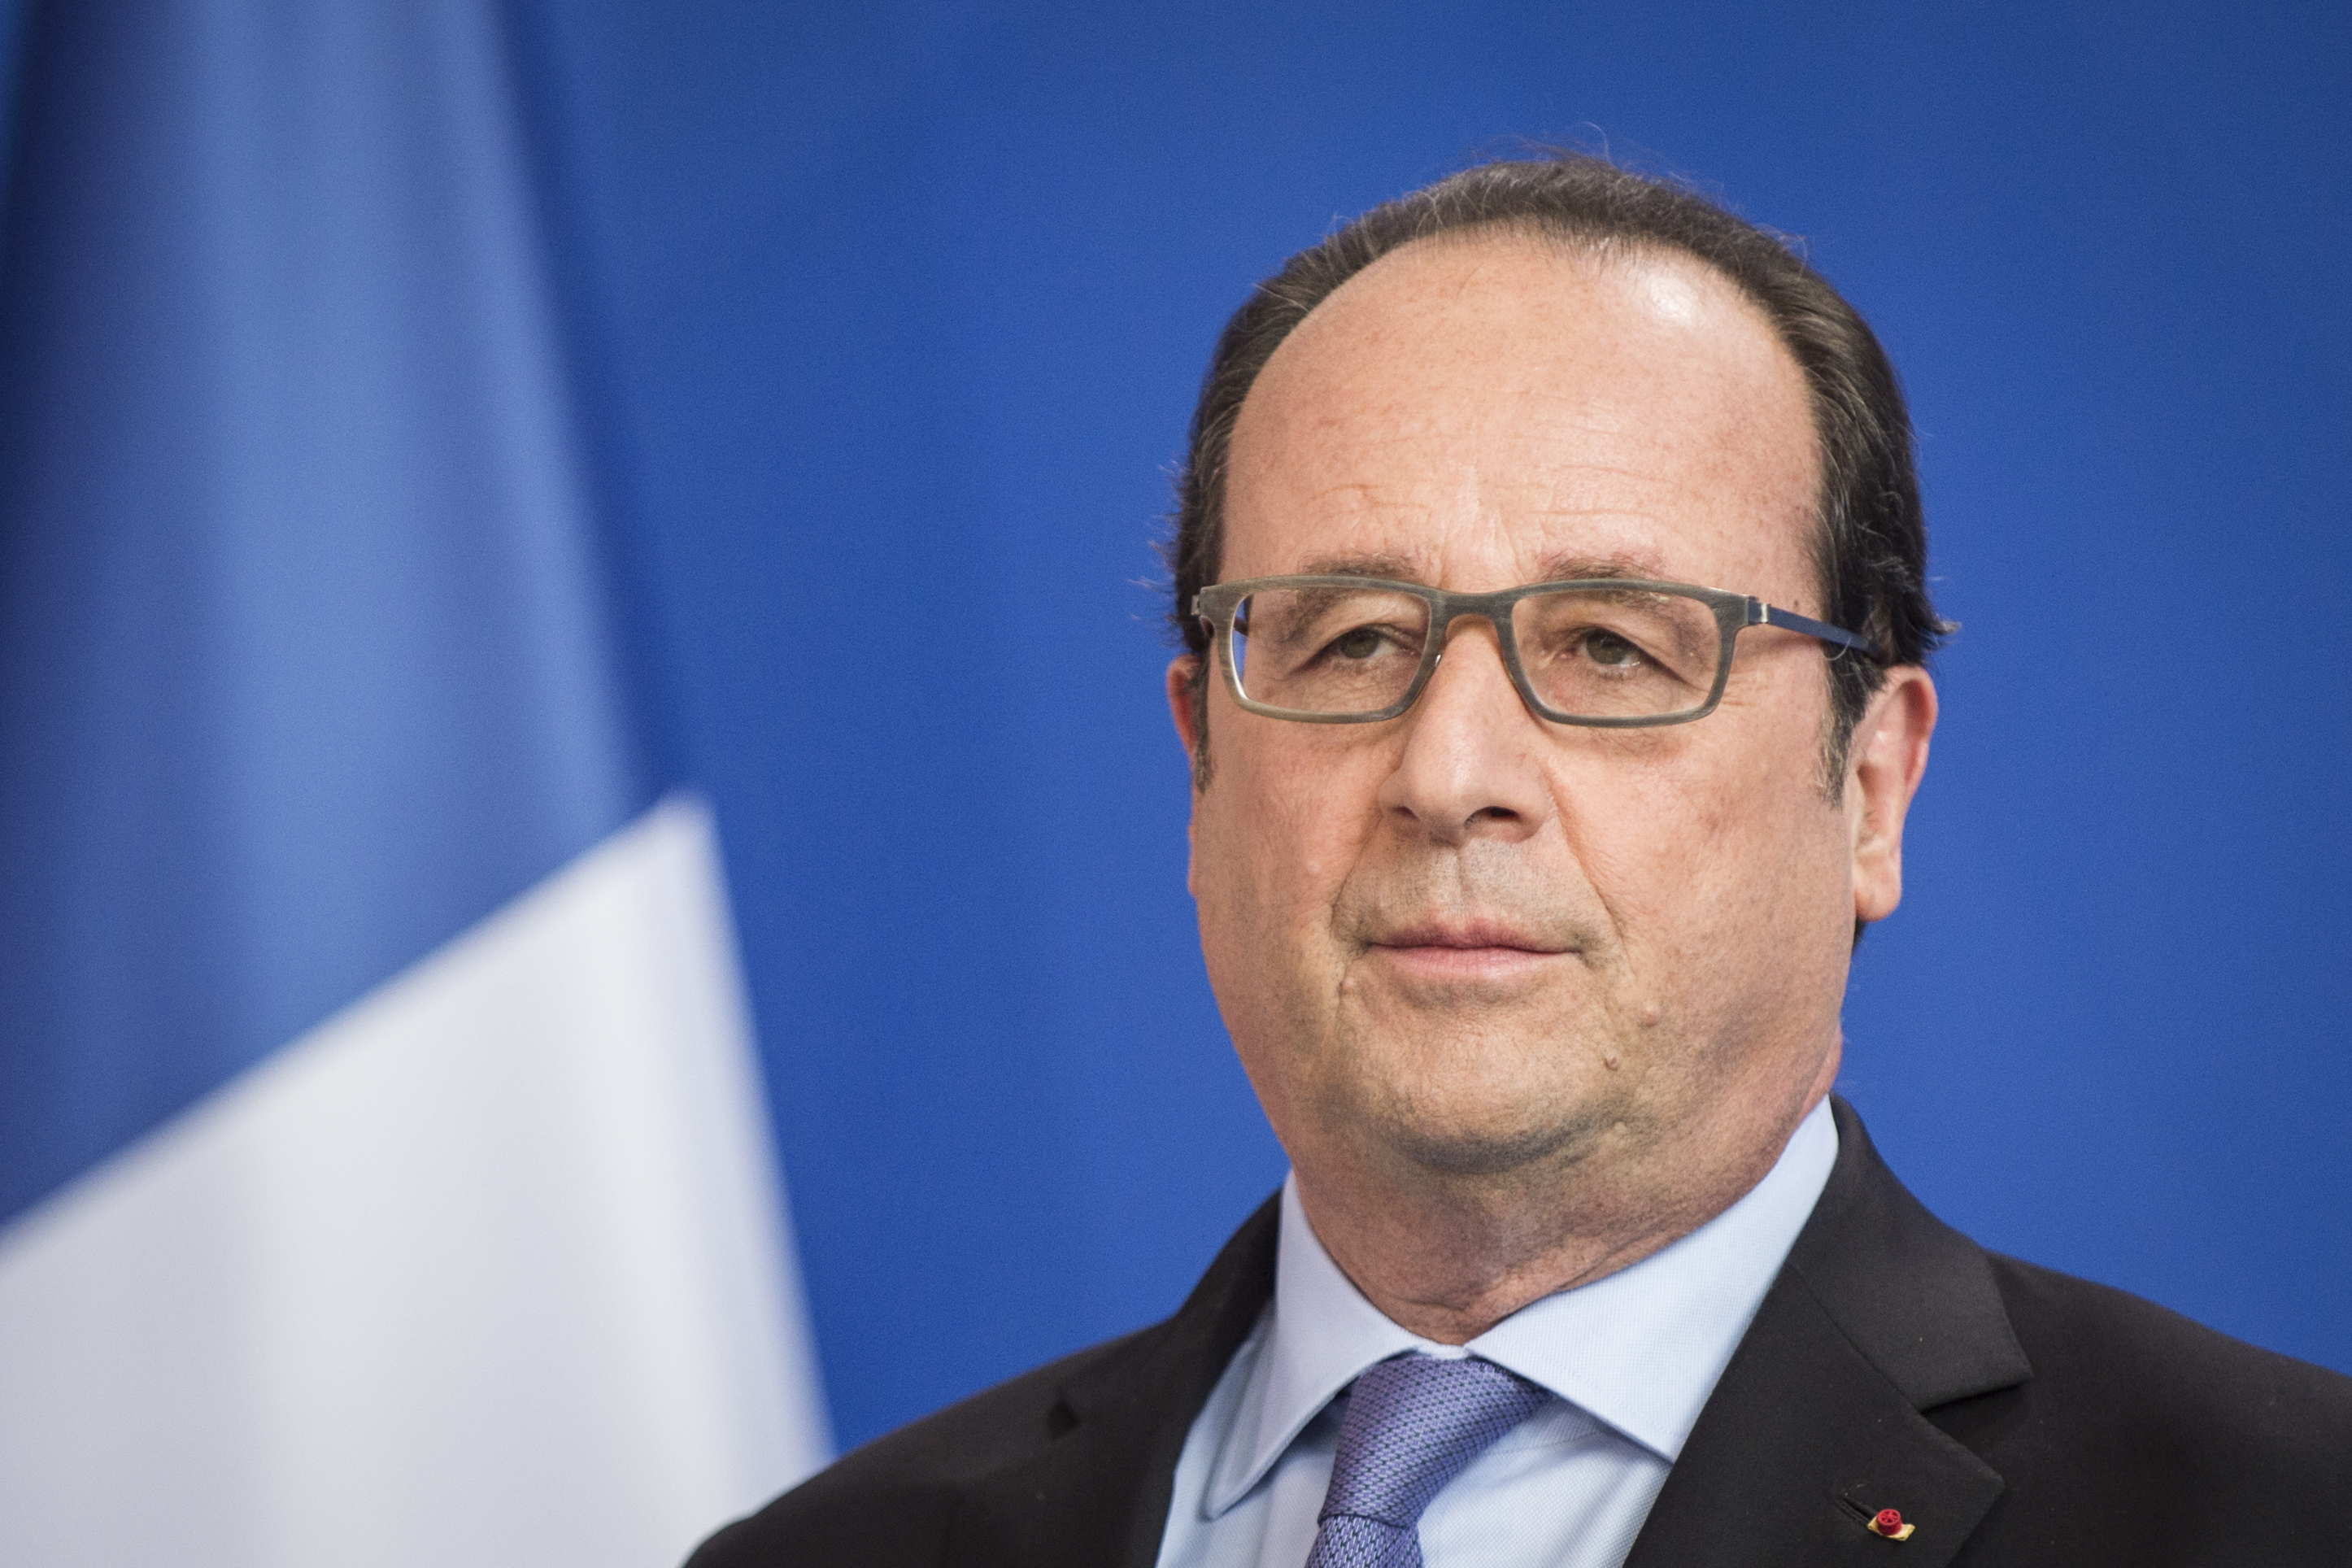 President of France Francois Hollande during a press conference on June 27, 2016 in Berlin, Germany.